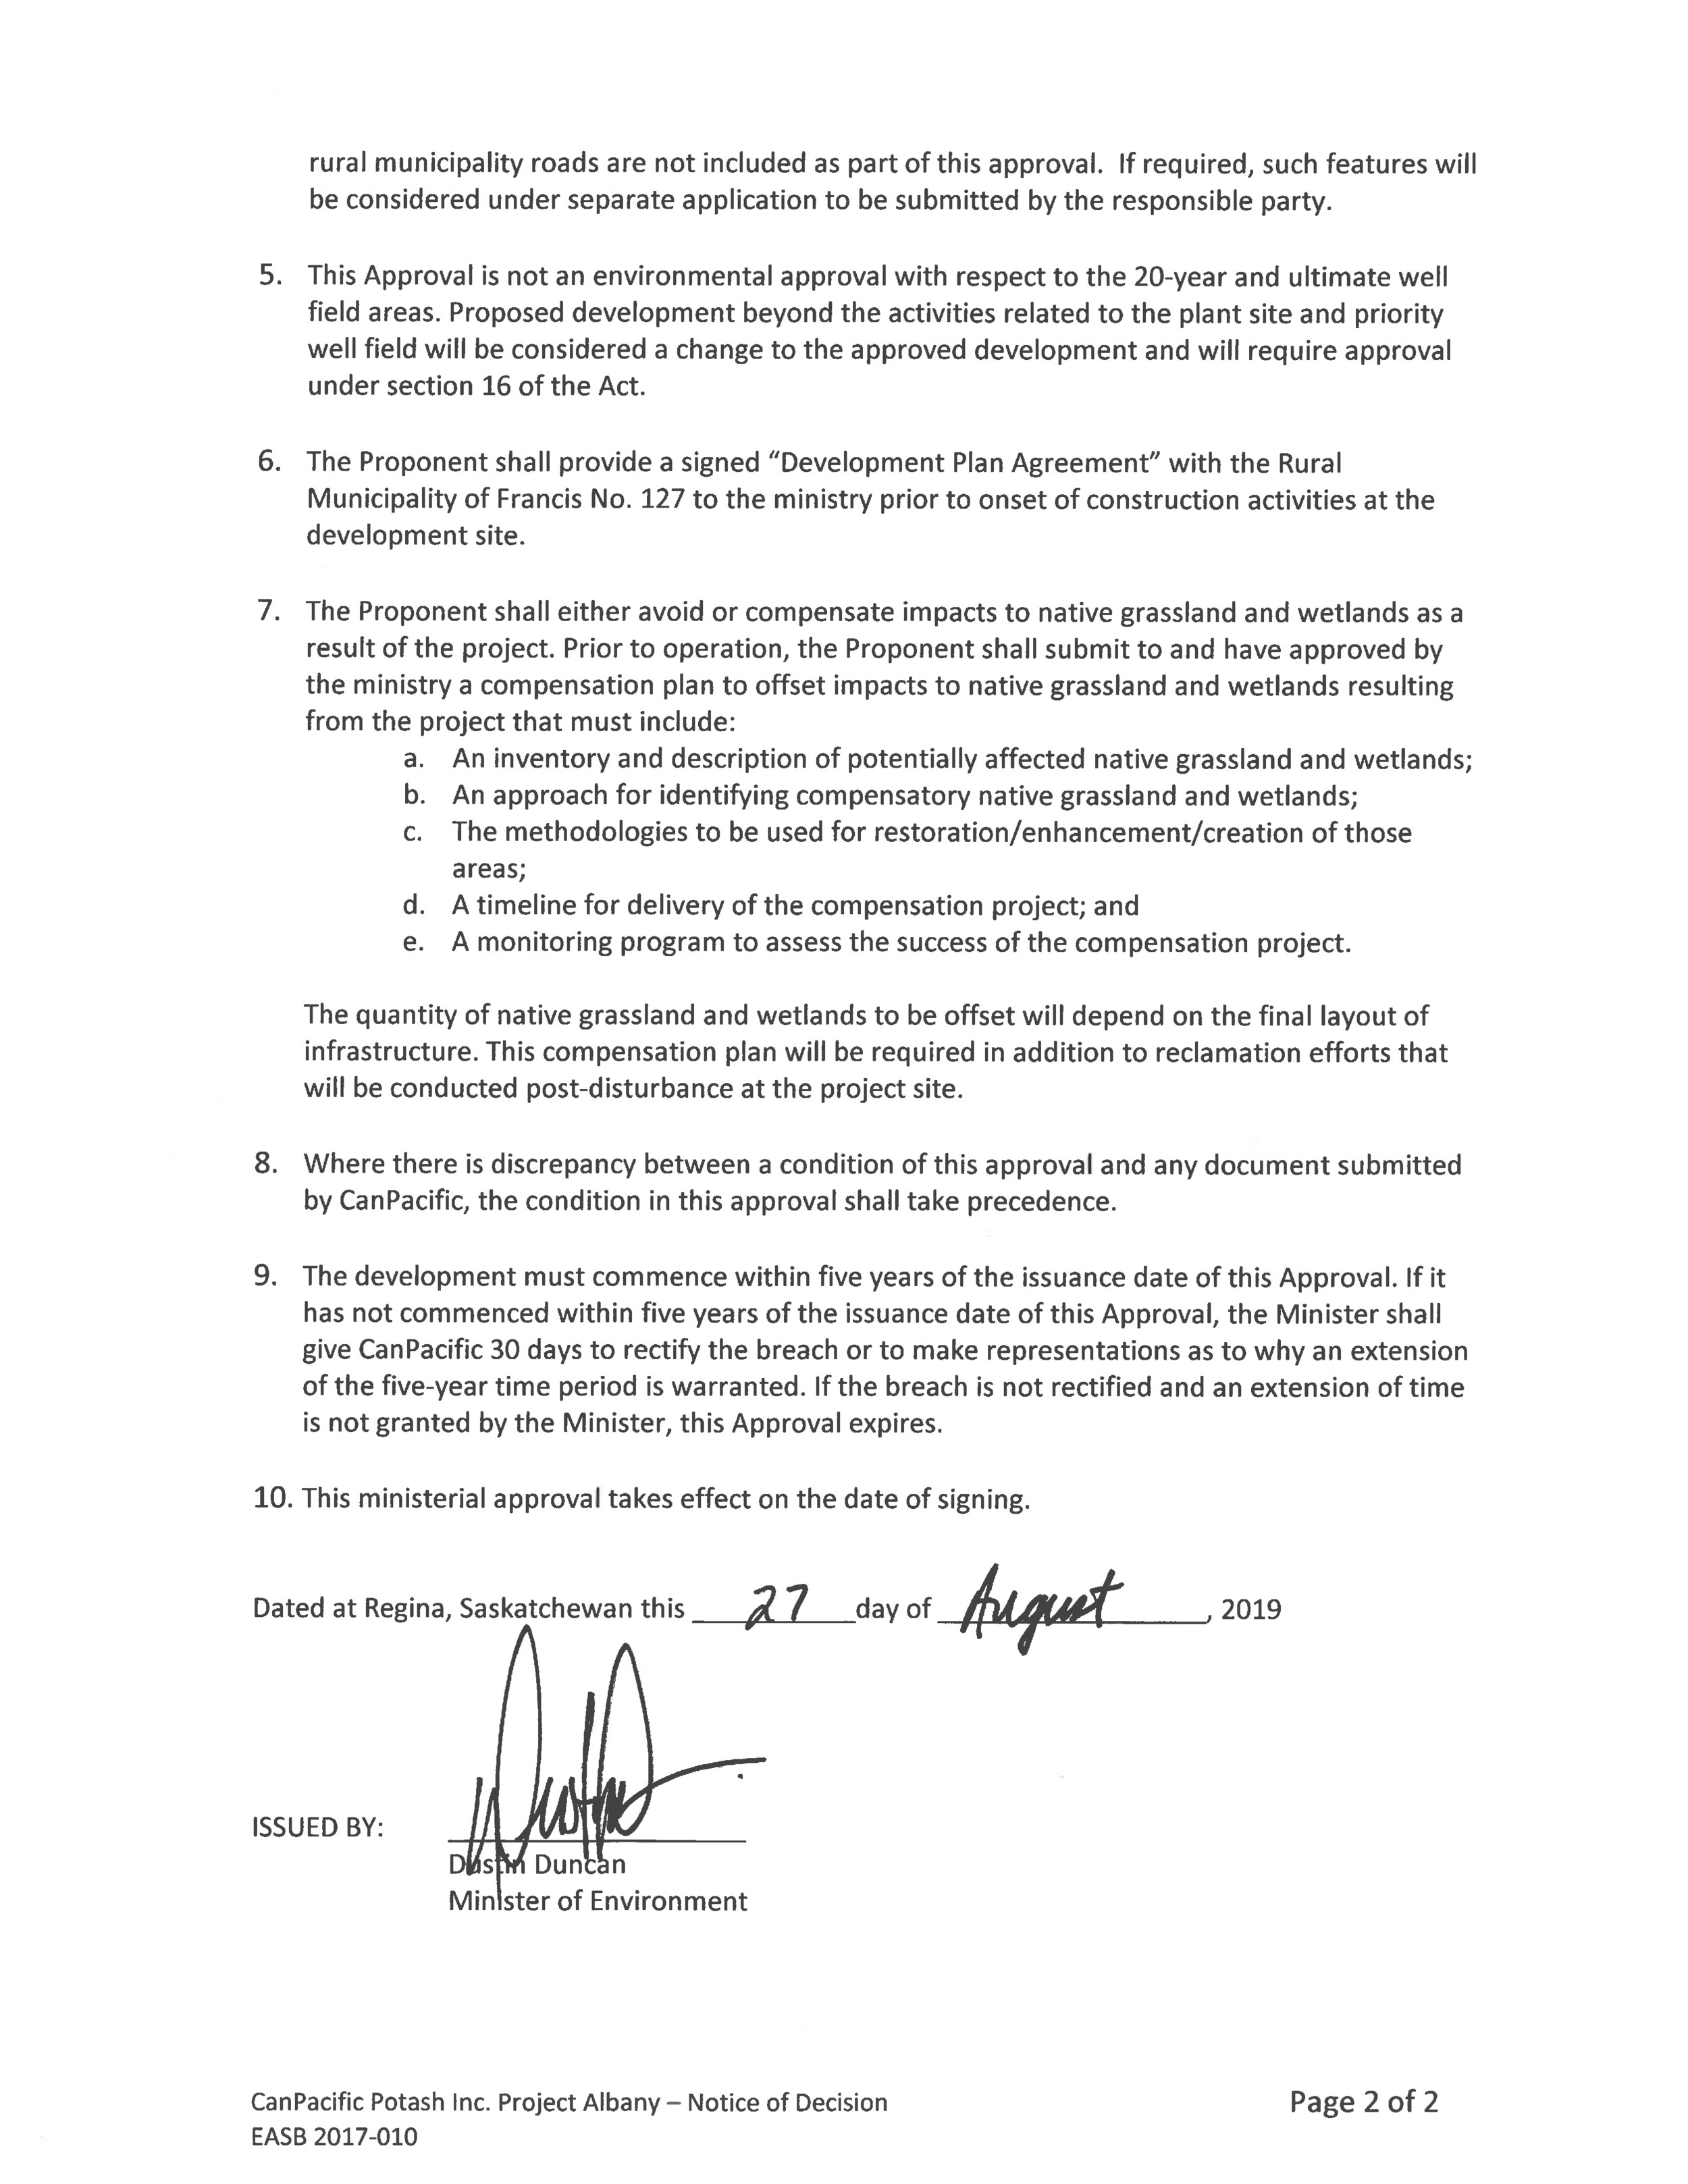 2017-010 Albany Project Decision_Signed (2)_Page_02.png